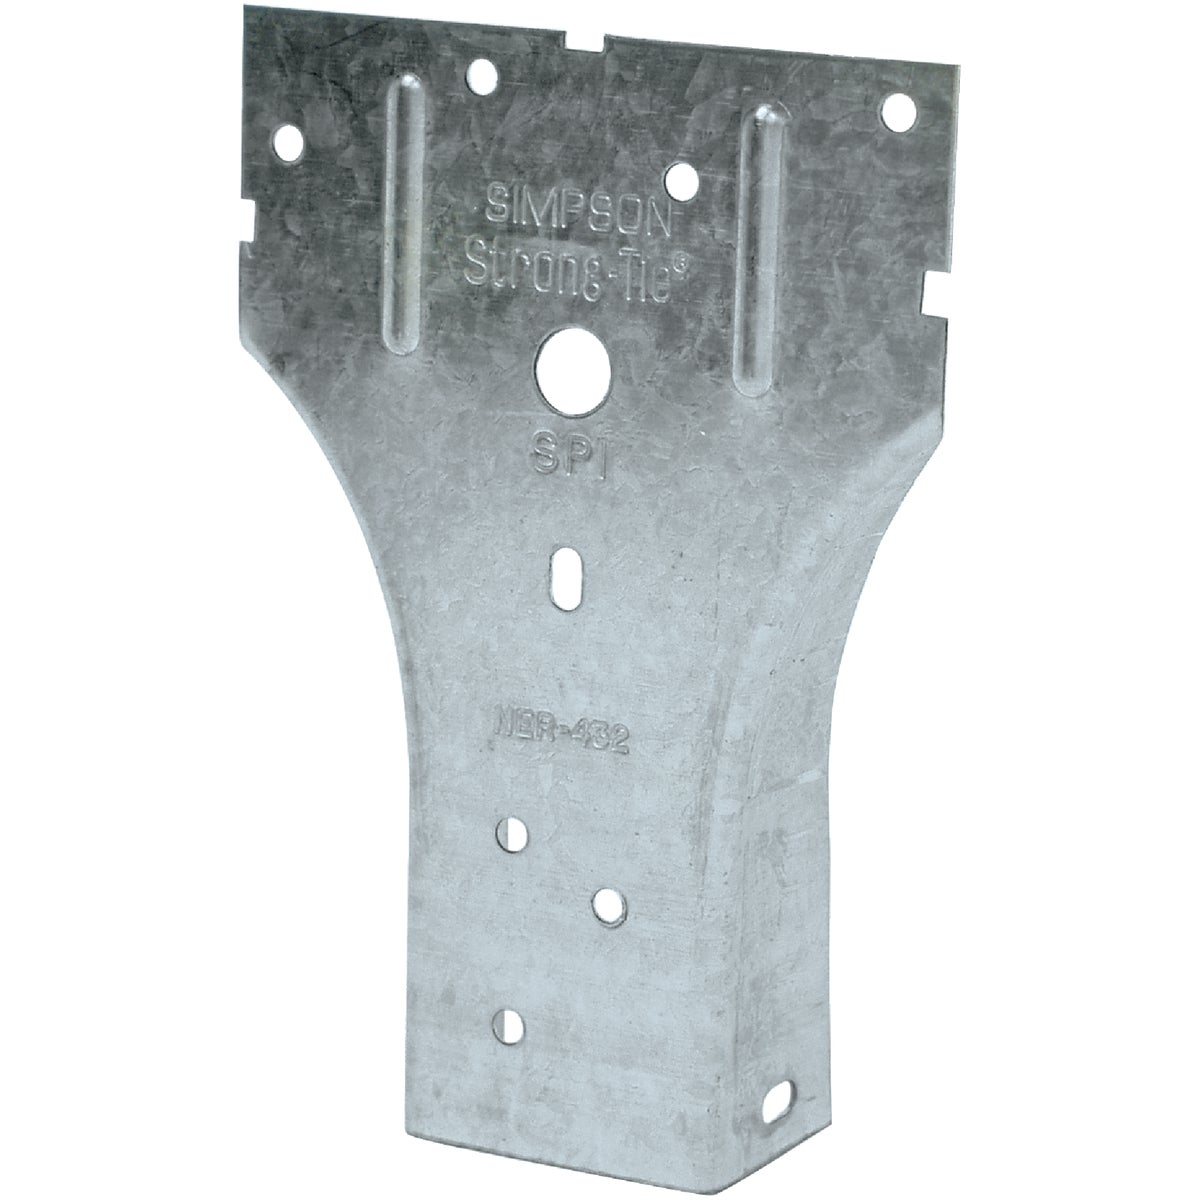 STUD PLATE - SP1 by Simpson Strong Tie